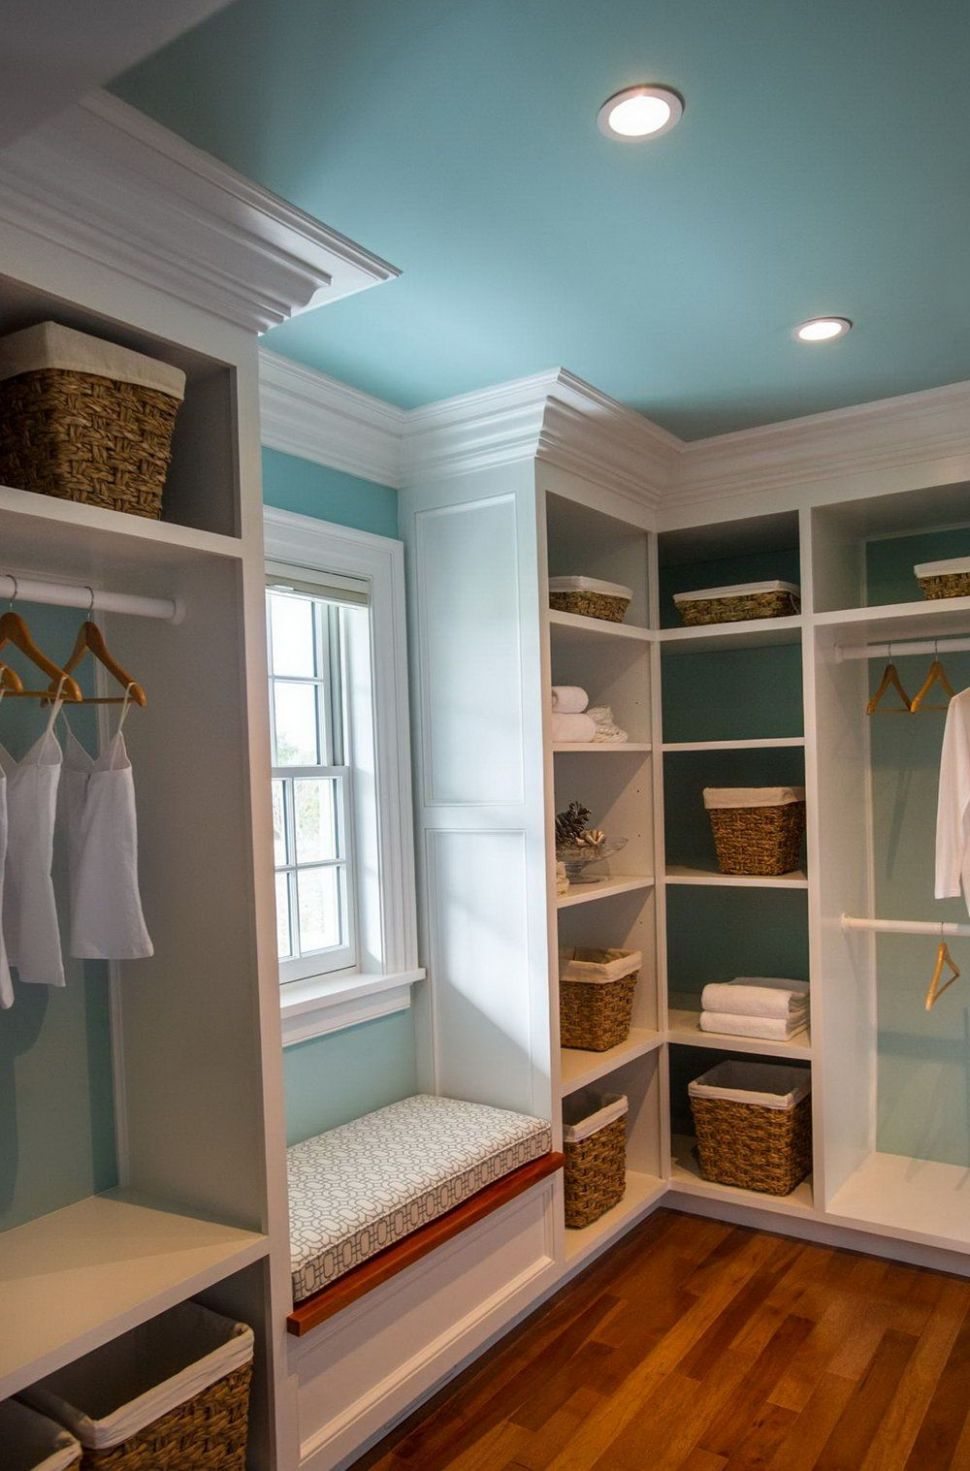 10 Pretty Closet Systems, According to Architects [Full Image ...